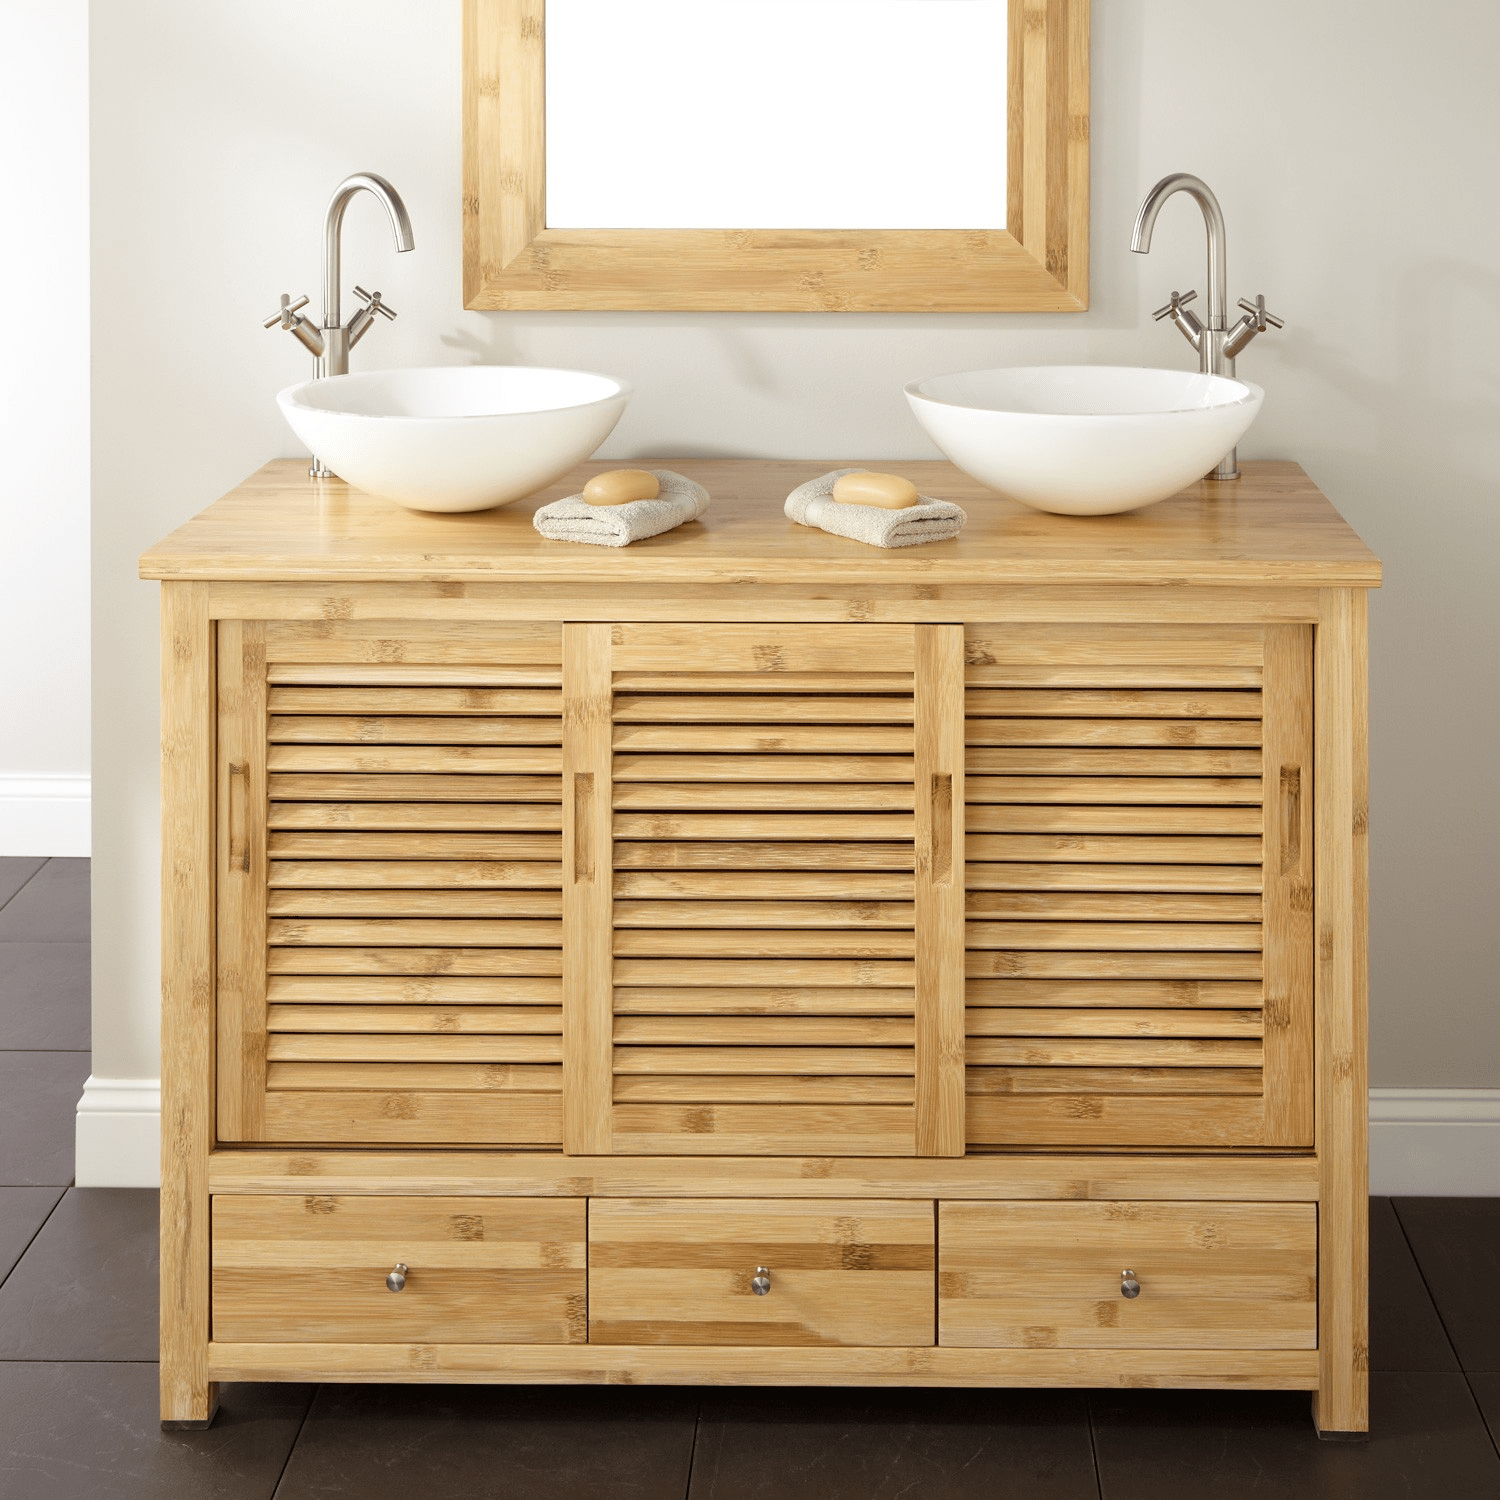 All about bathroom vanity base cabinet unfinished Unfinished bathroom vanity cabinet